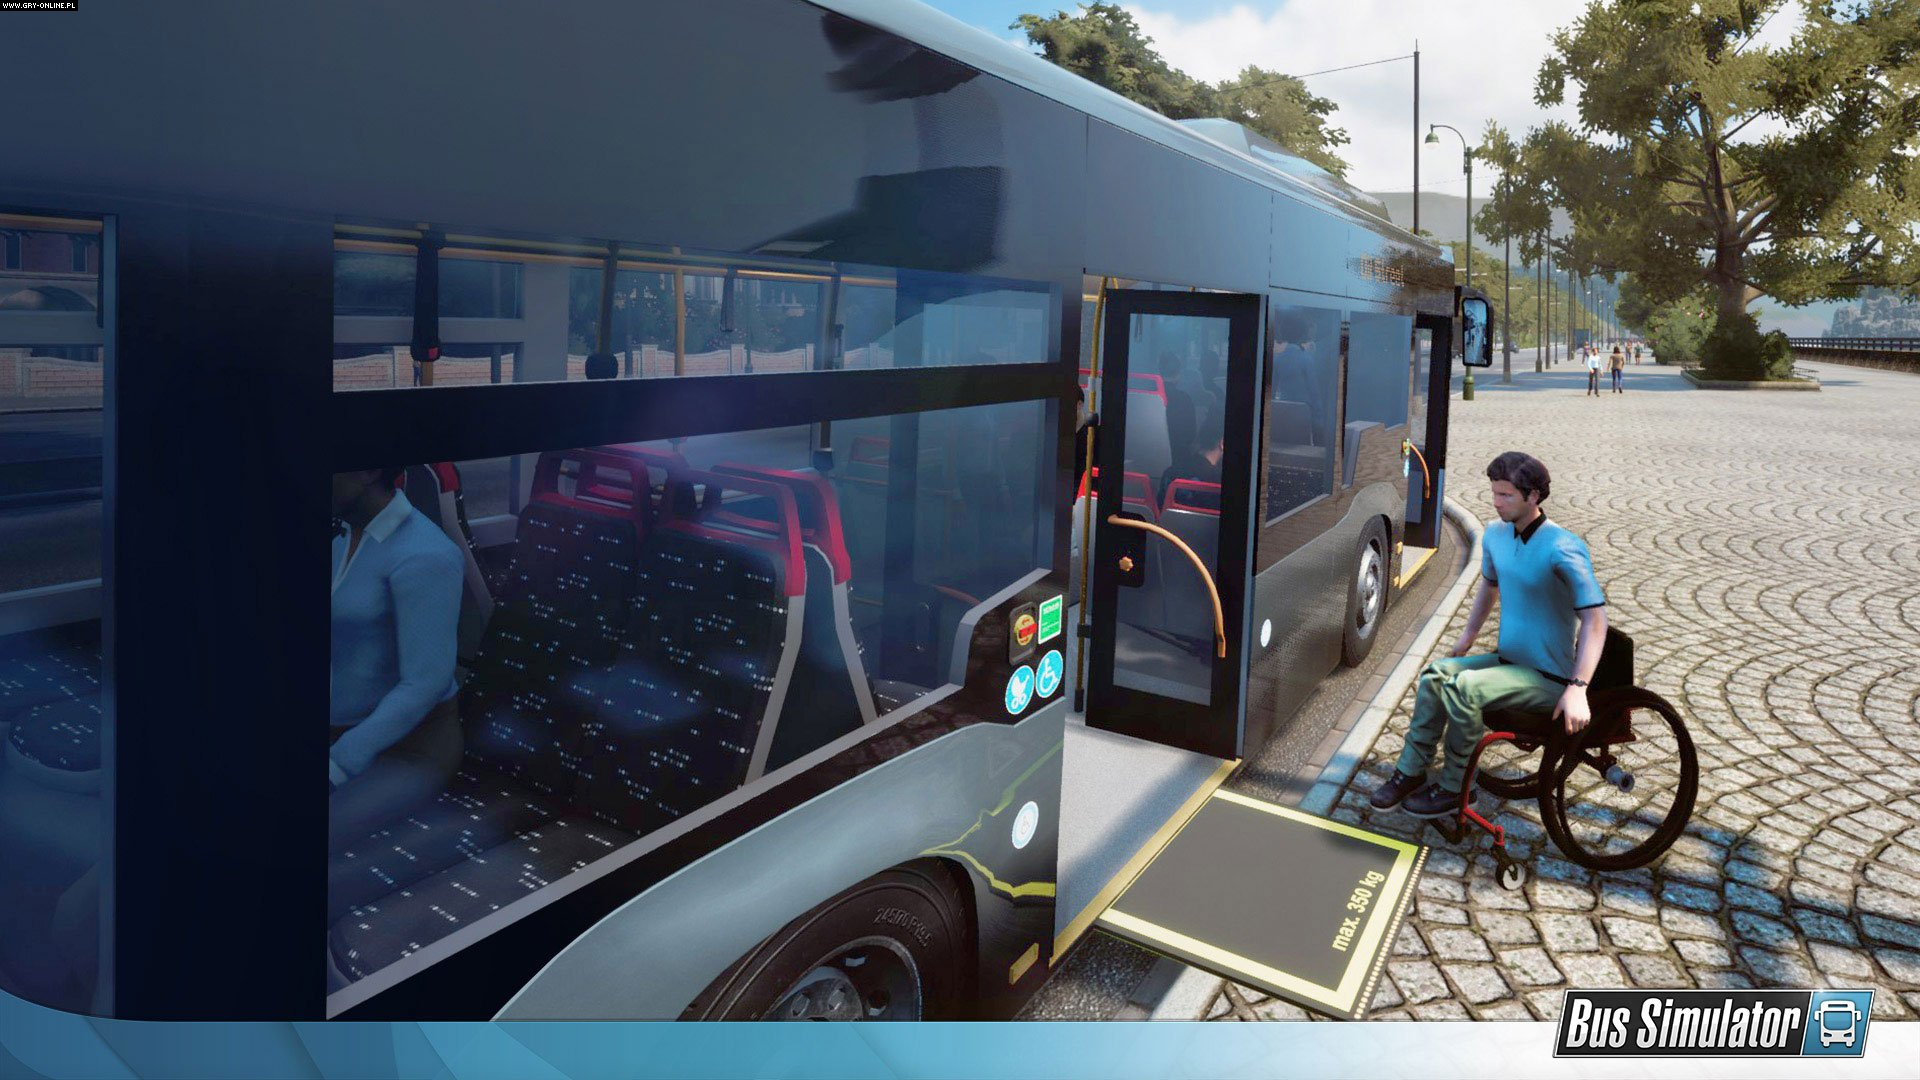 Bus Simulator PS4, XONE Gry Screen 1/6,  StillAlive, astragon Entertainment